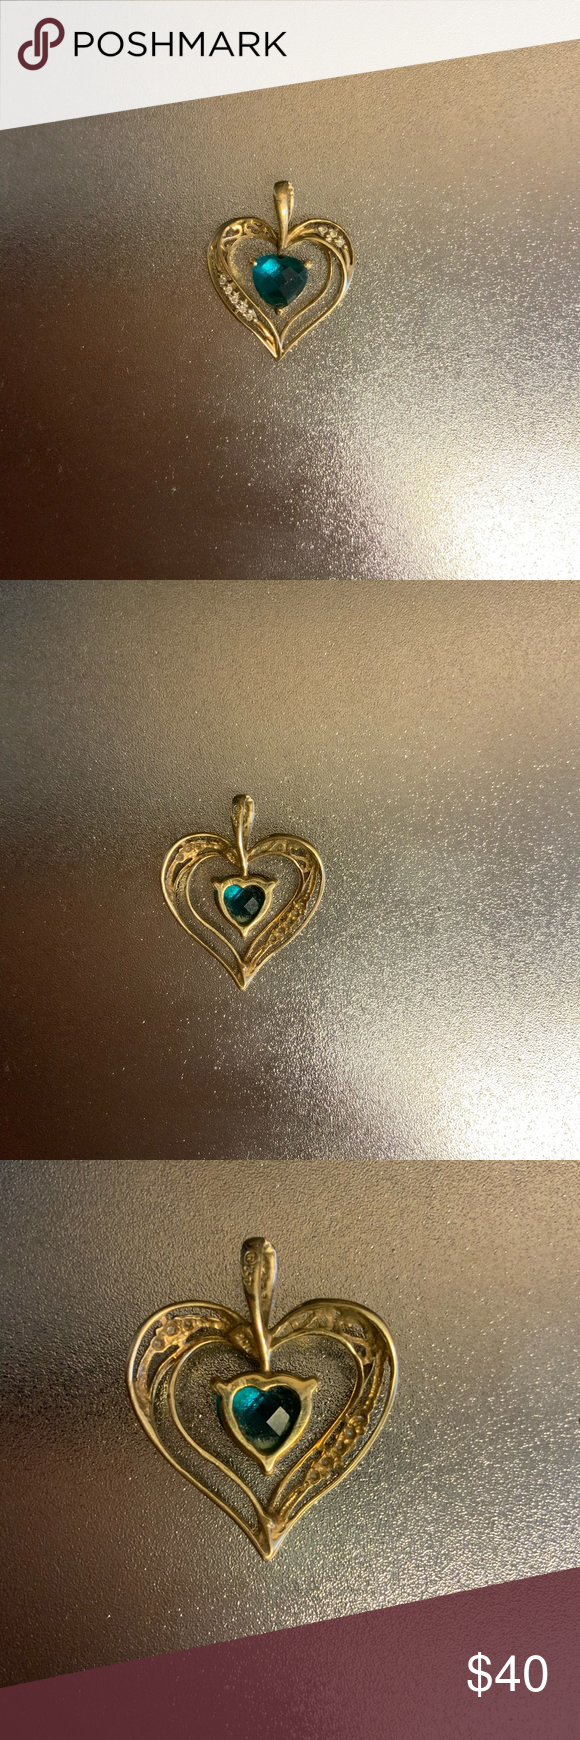 10k Gold Emerald Heart Pendant Price Of 10k Gold Today November 29 2019 Is 19 51 Per Gram Jewelry Necklaces Womens Jewelry Necklace 10k Gold Heart Pendant